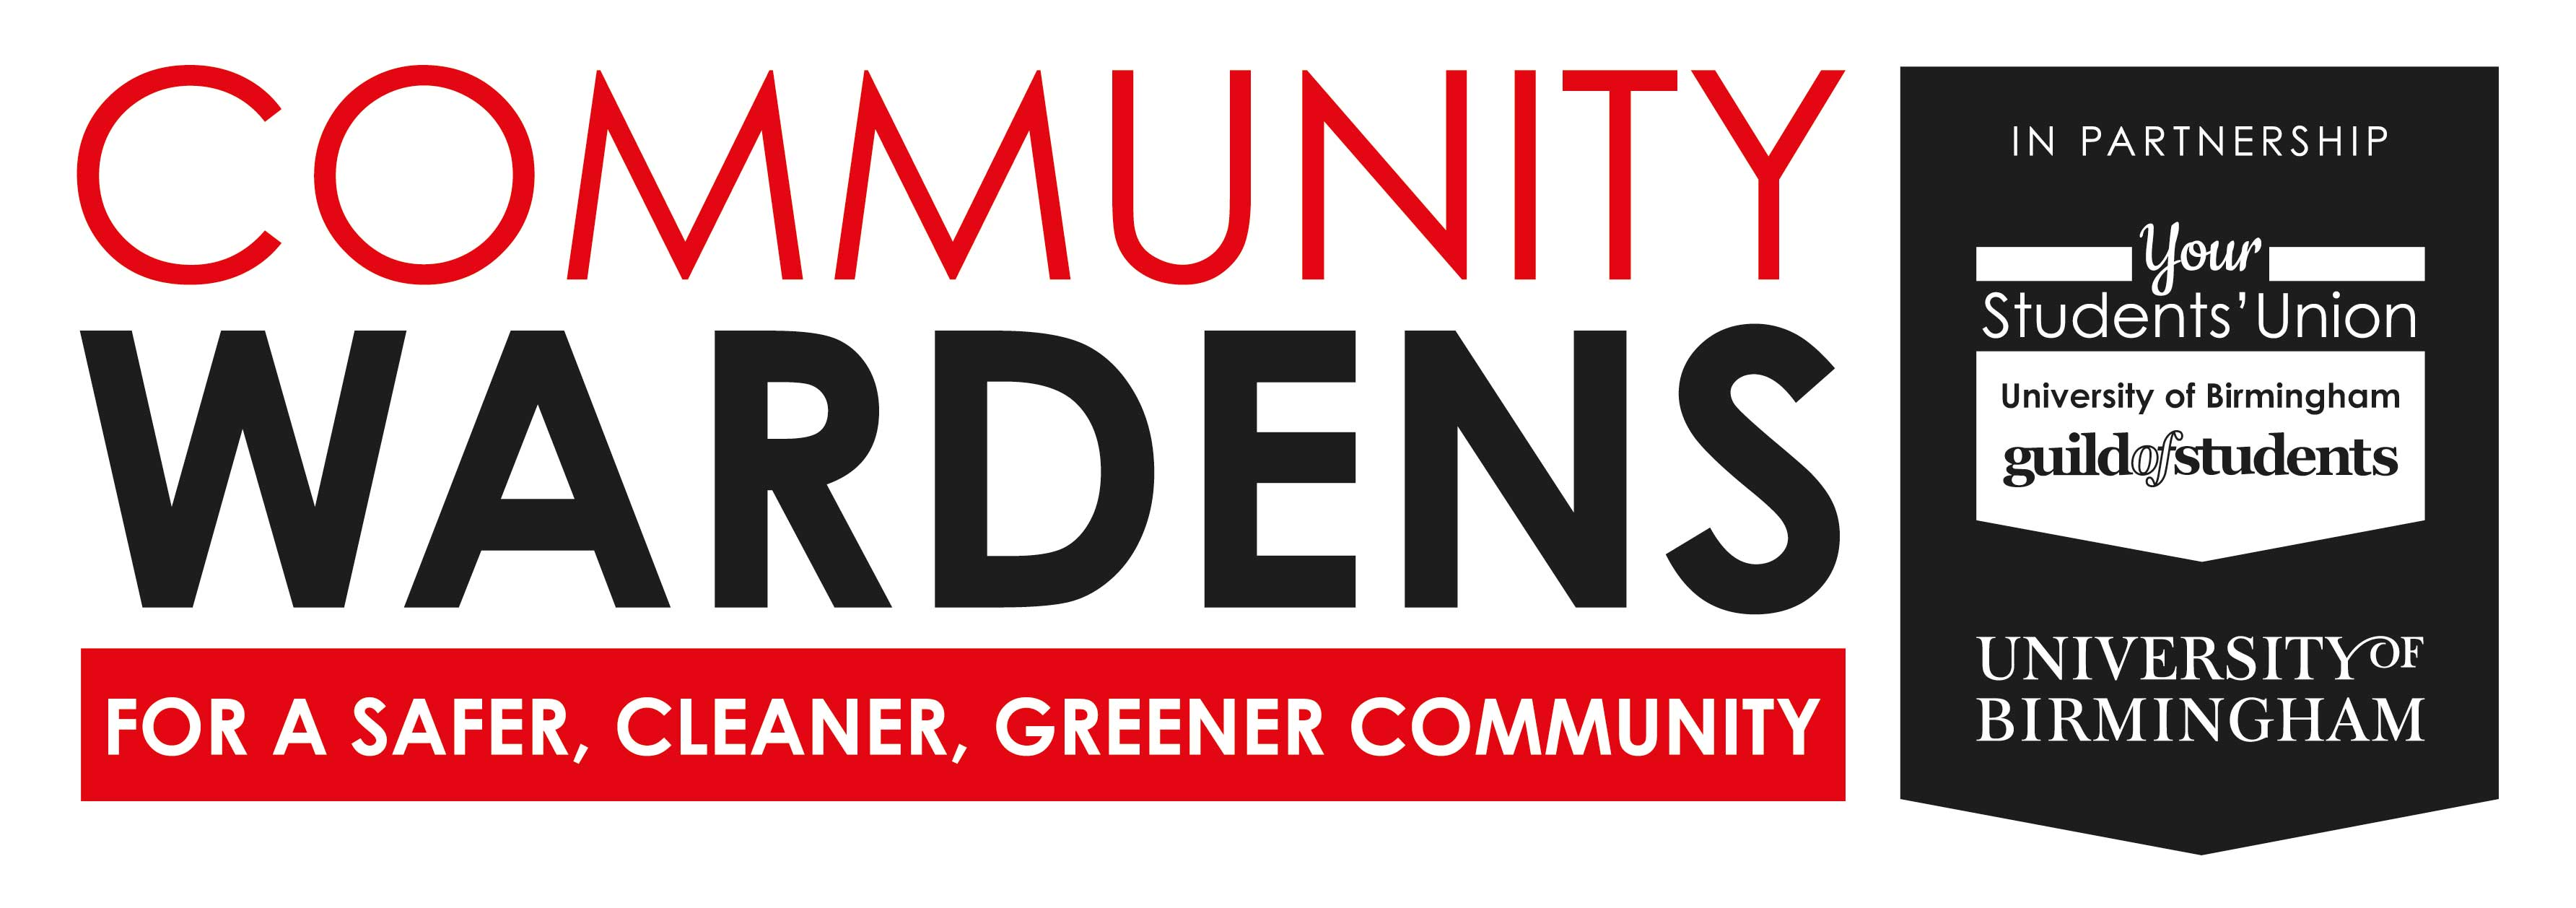 Community Wardens logo